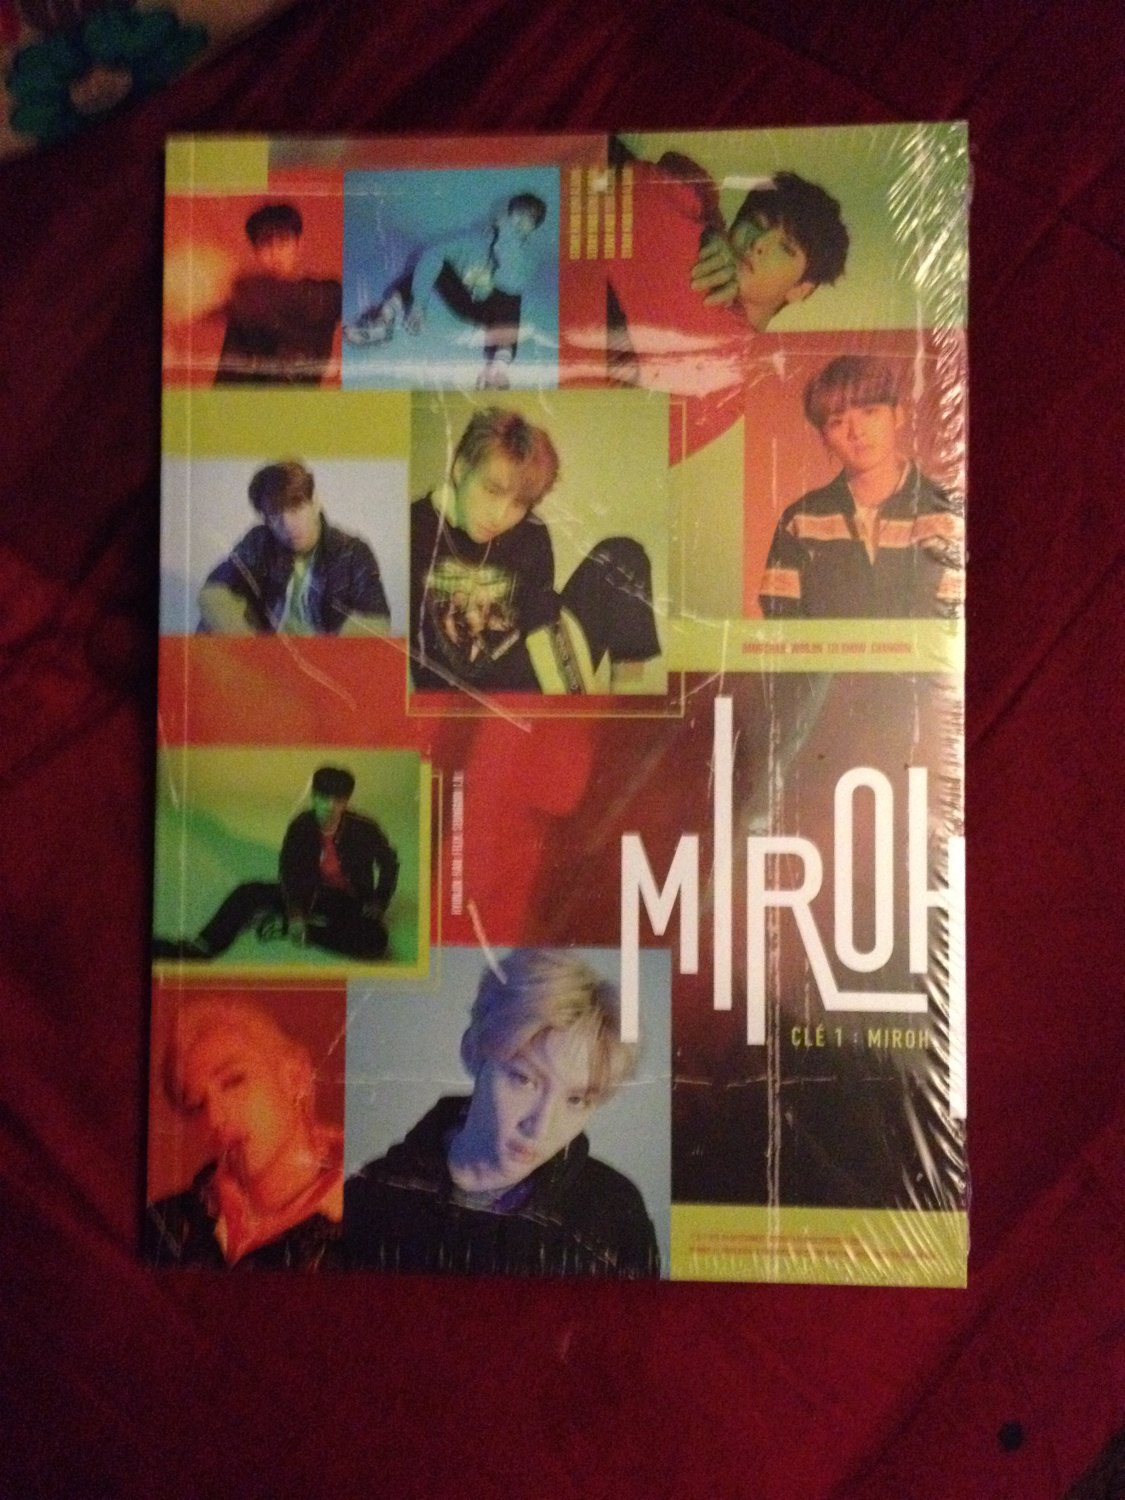 Stray Kids: MIROH (MINI ALBUM)